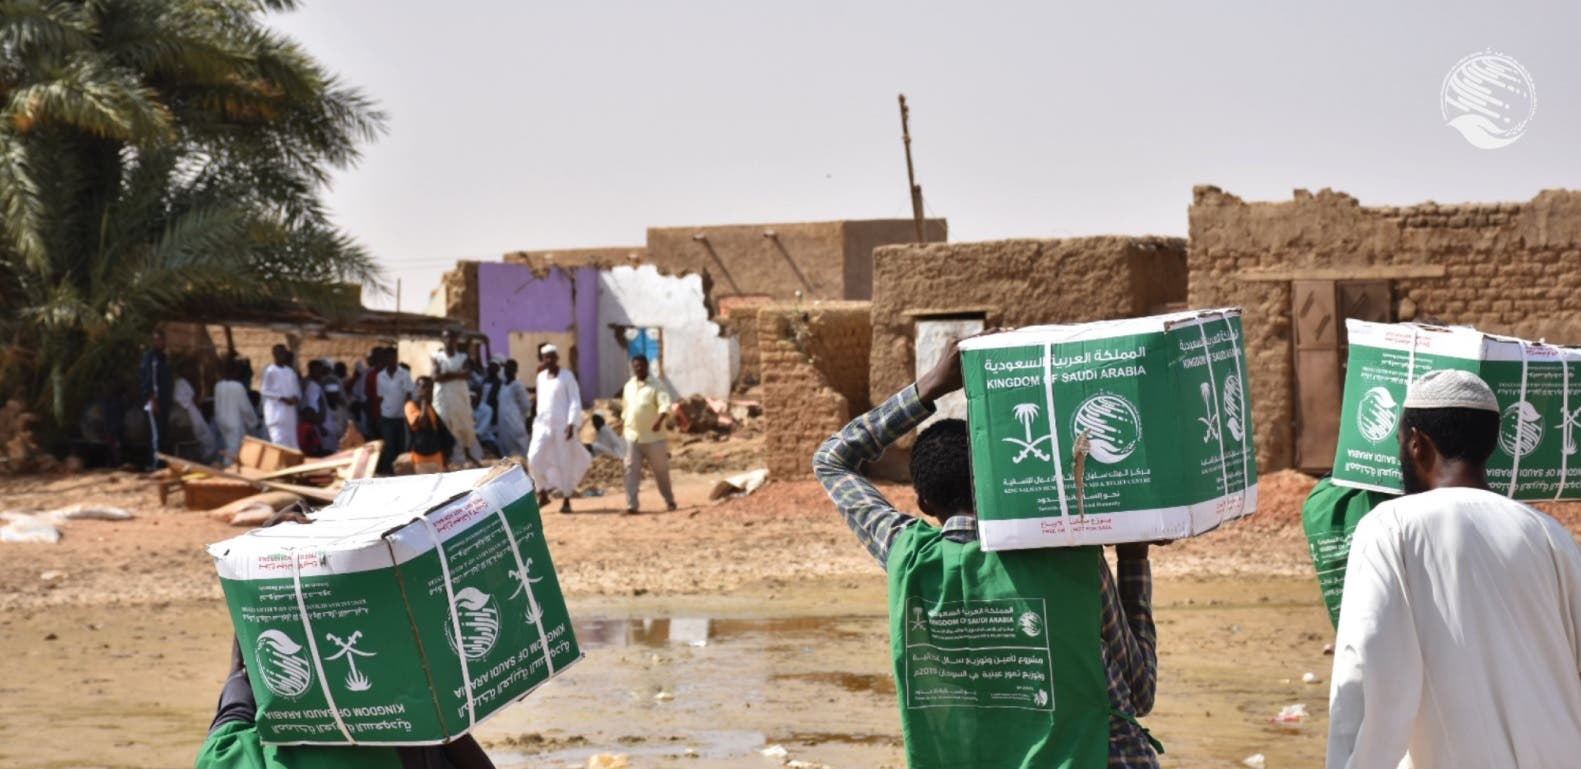 KSrelief volunteers hand out aid packages to people affected by the floods in Sudan. (Twitter)